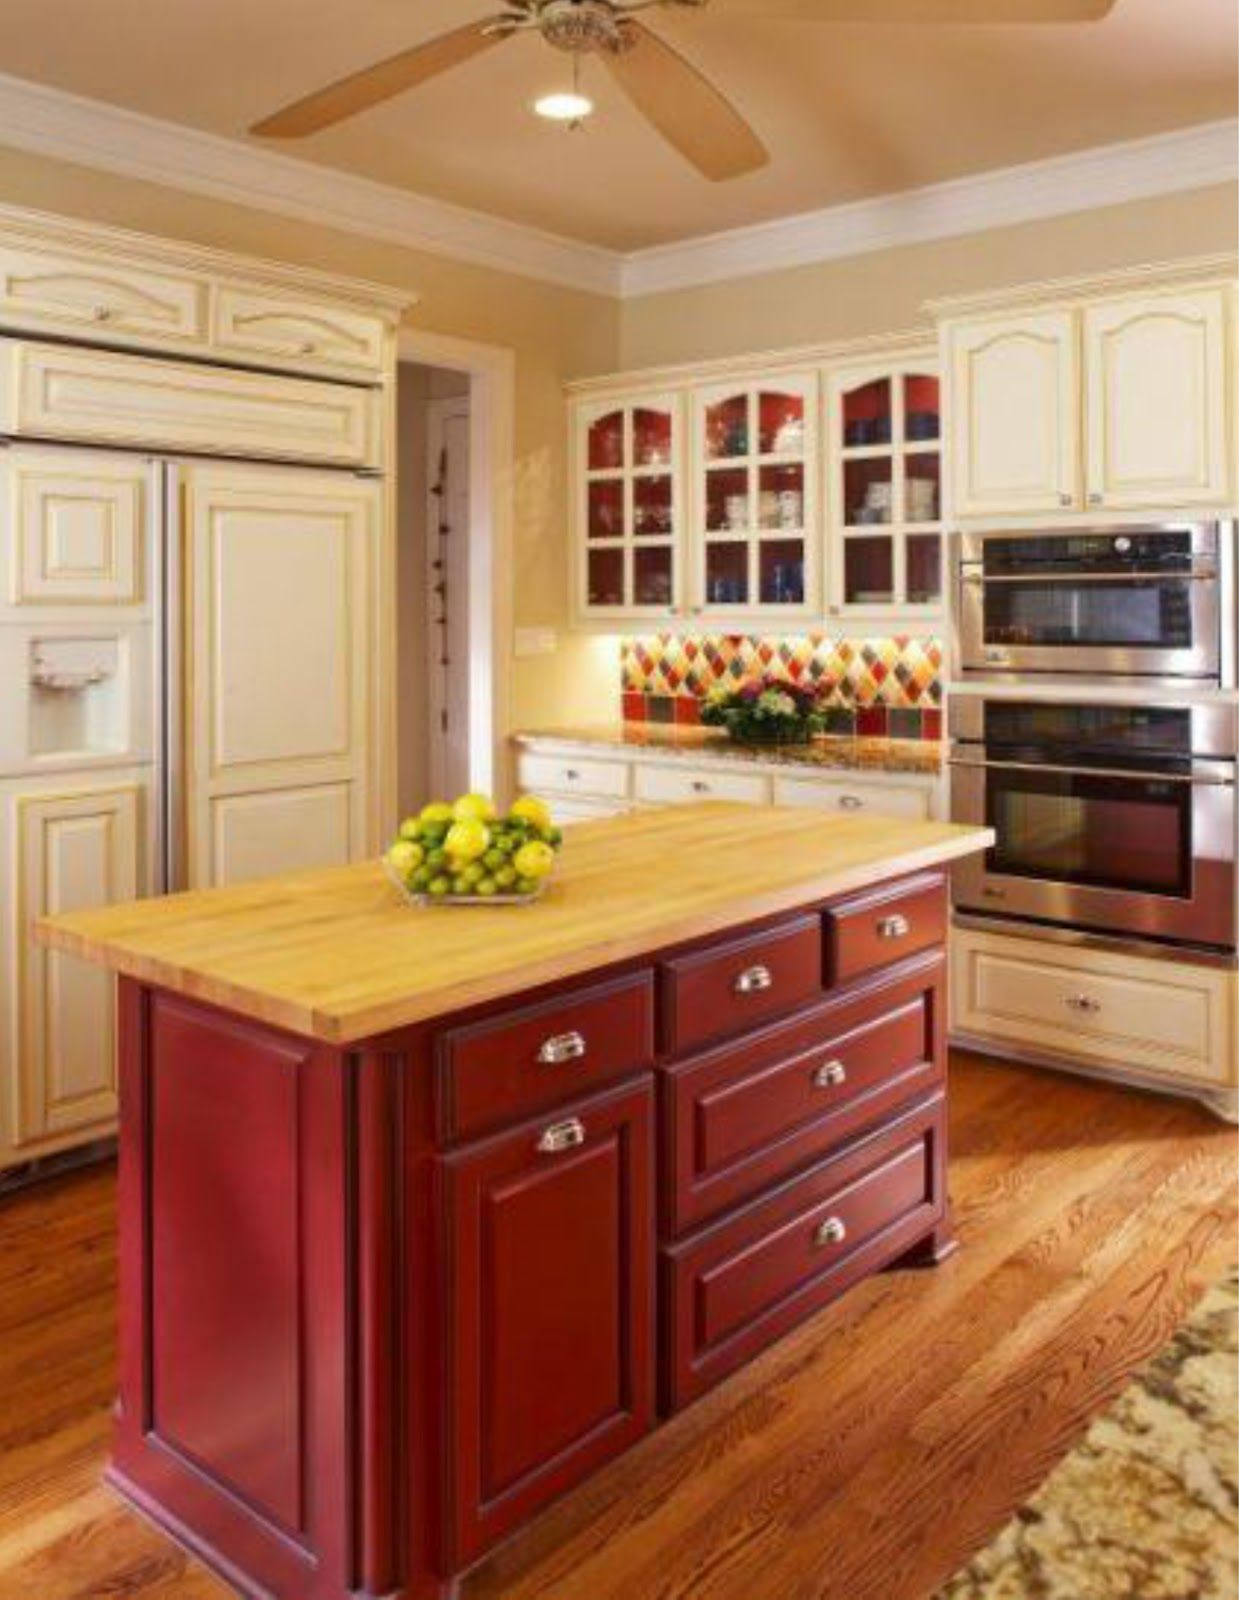 39 two tone kitchen cabinets ideas that really cool | kitchen ideas